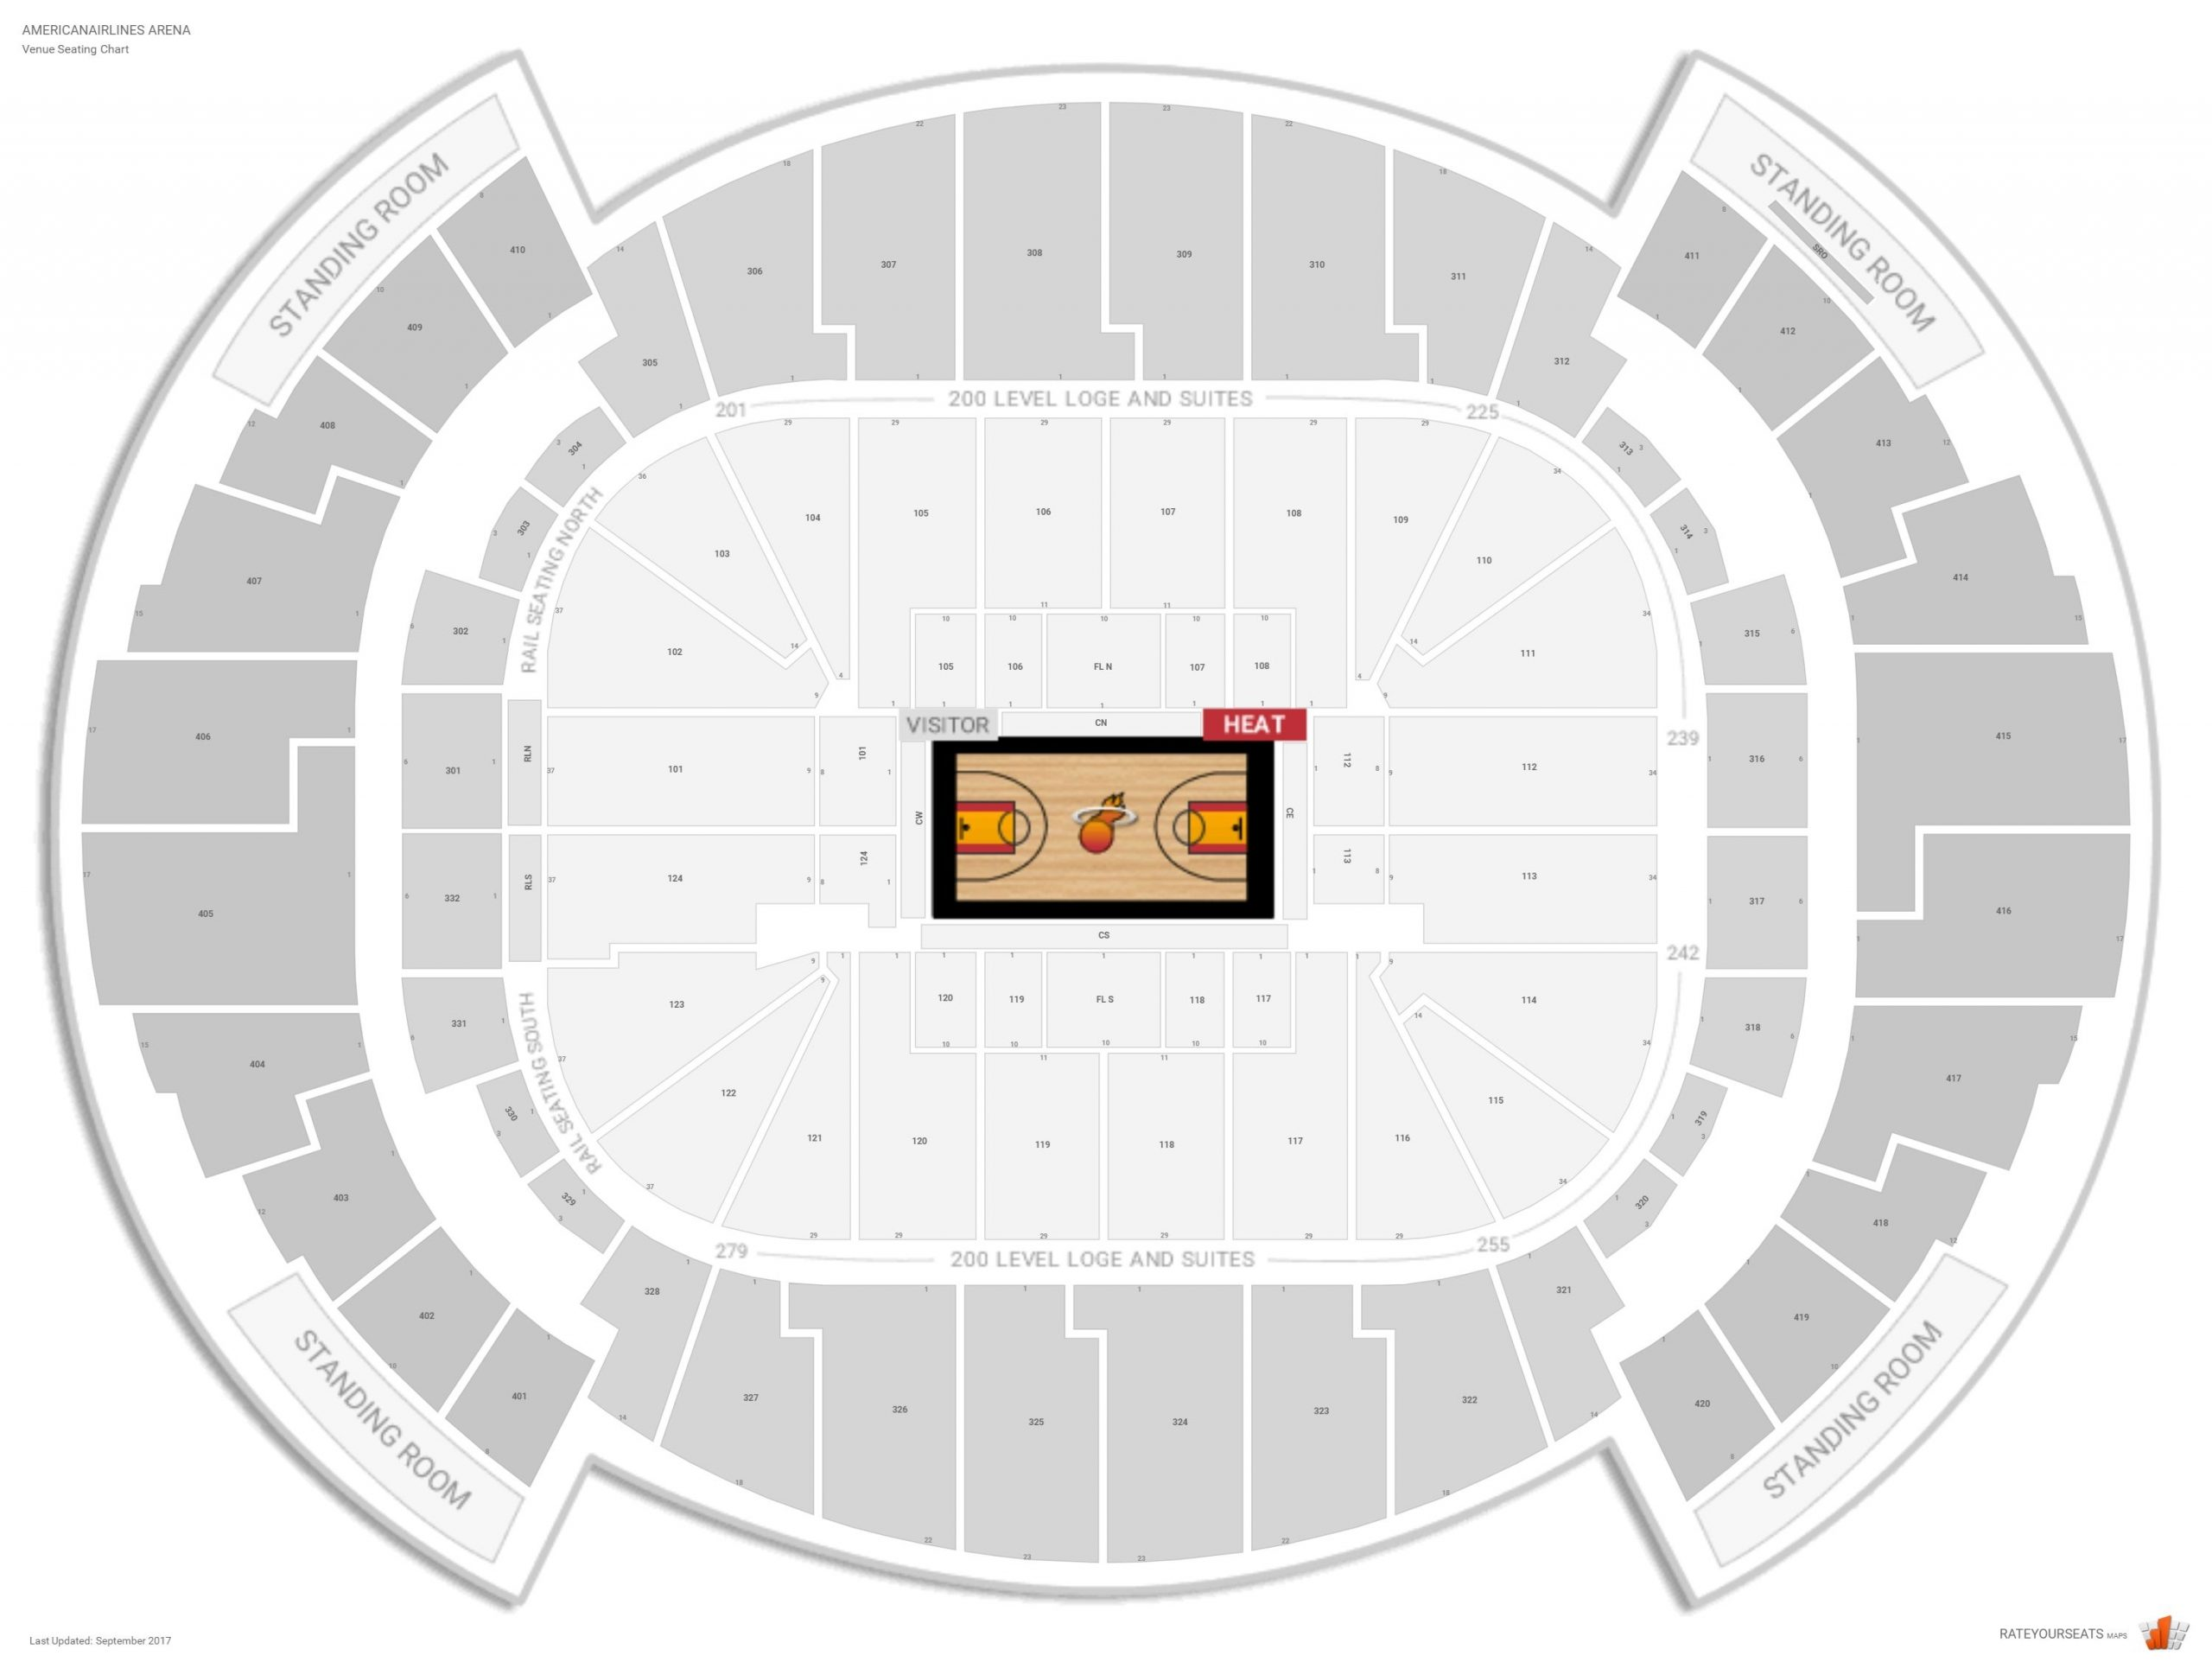 Miami Heat Arena Seating Chart With Seat Numbers - Marta for Miami Heat Stadium Seat Map